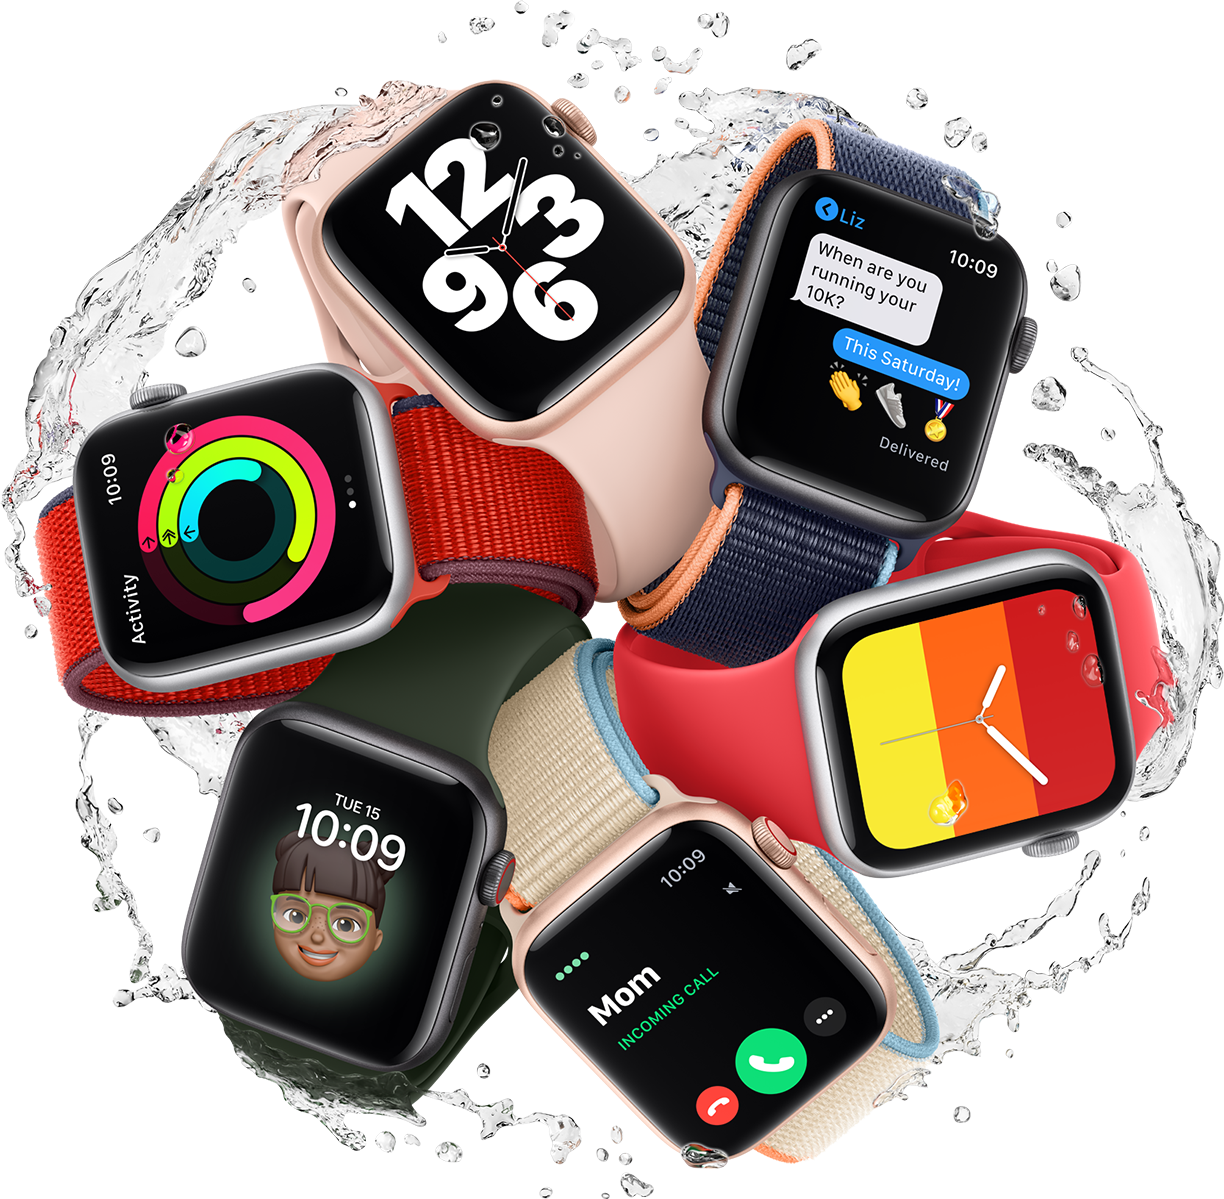 The Apple Watch SE has plenty of features for an affordable price.